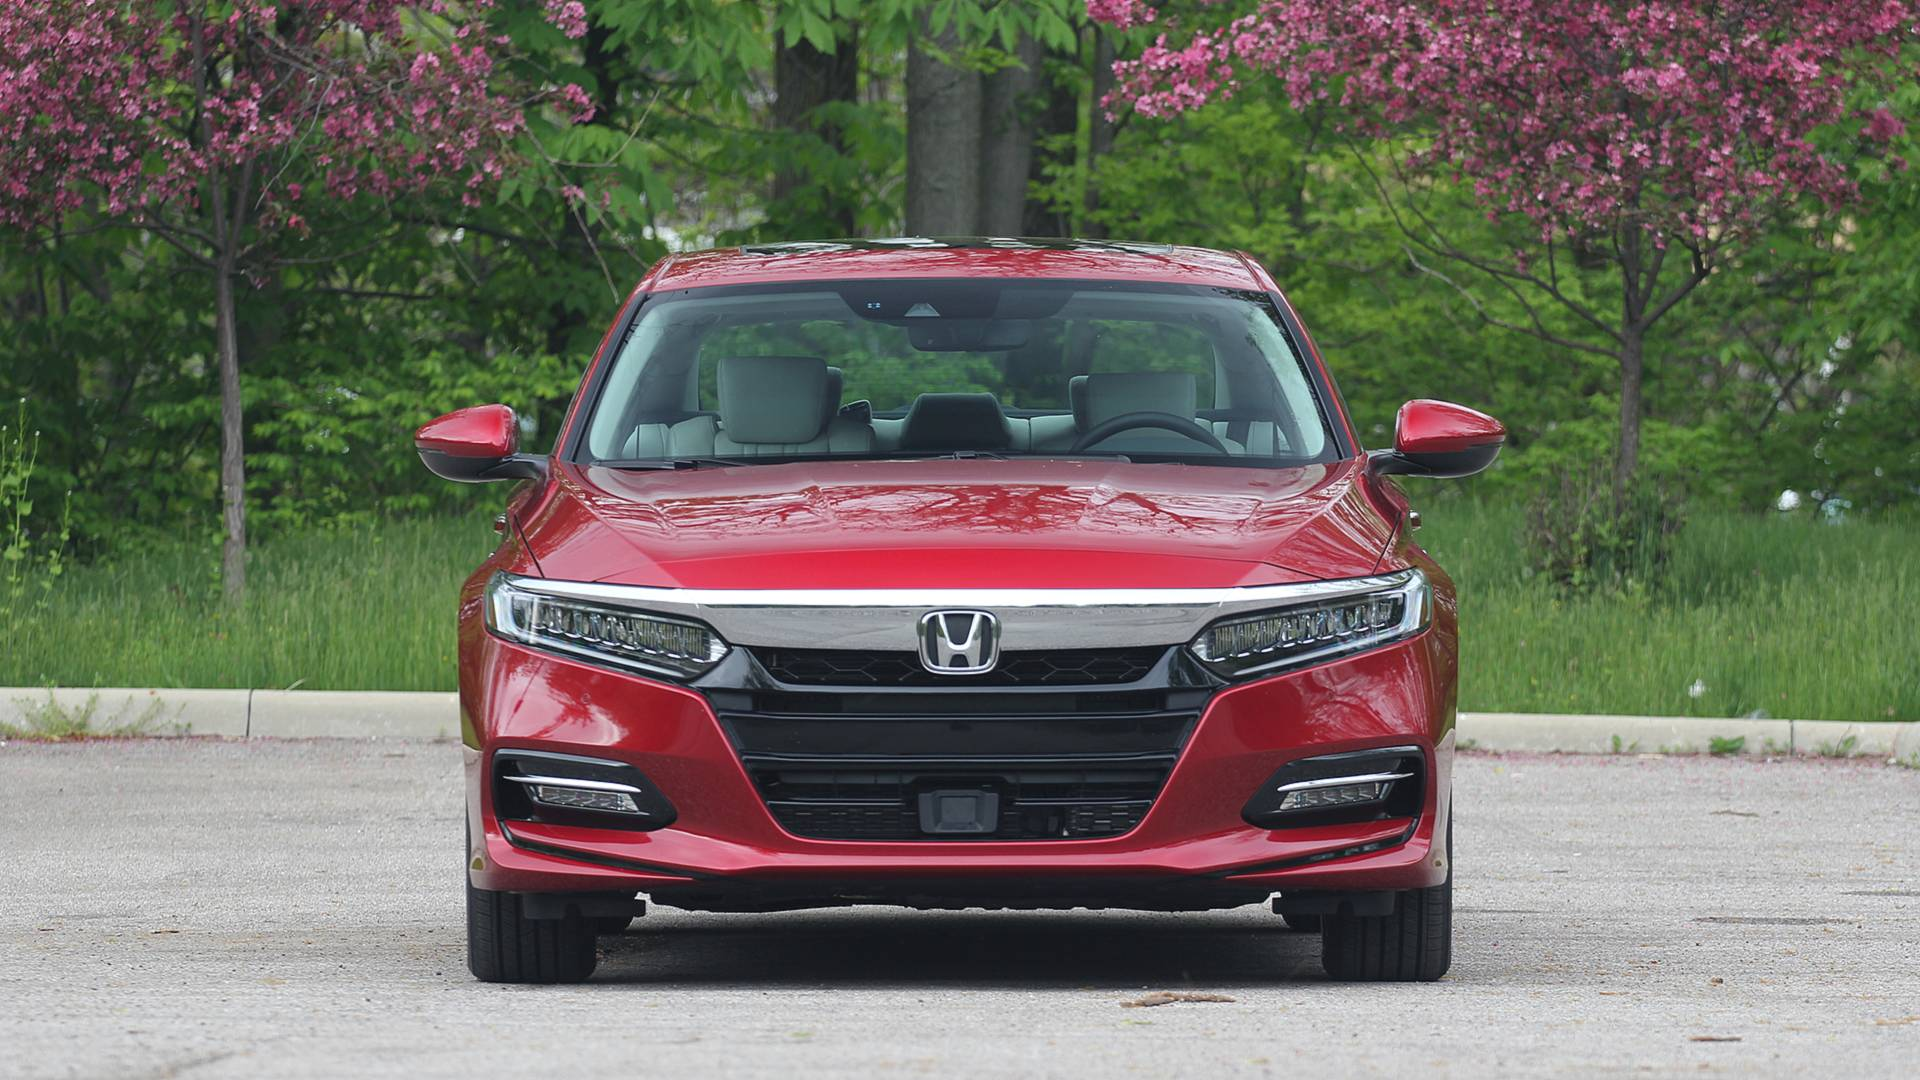 2018-honda-accord-hybrid-review.jpg